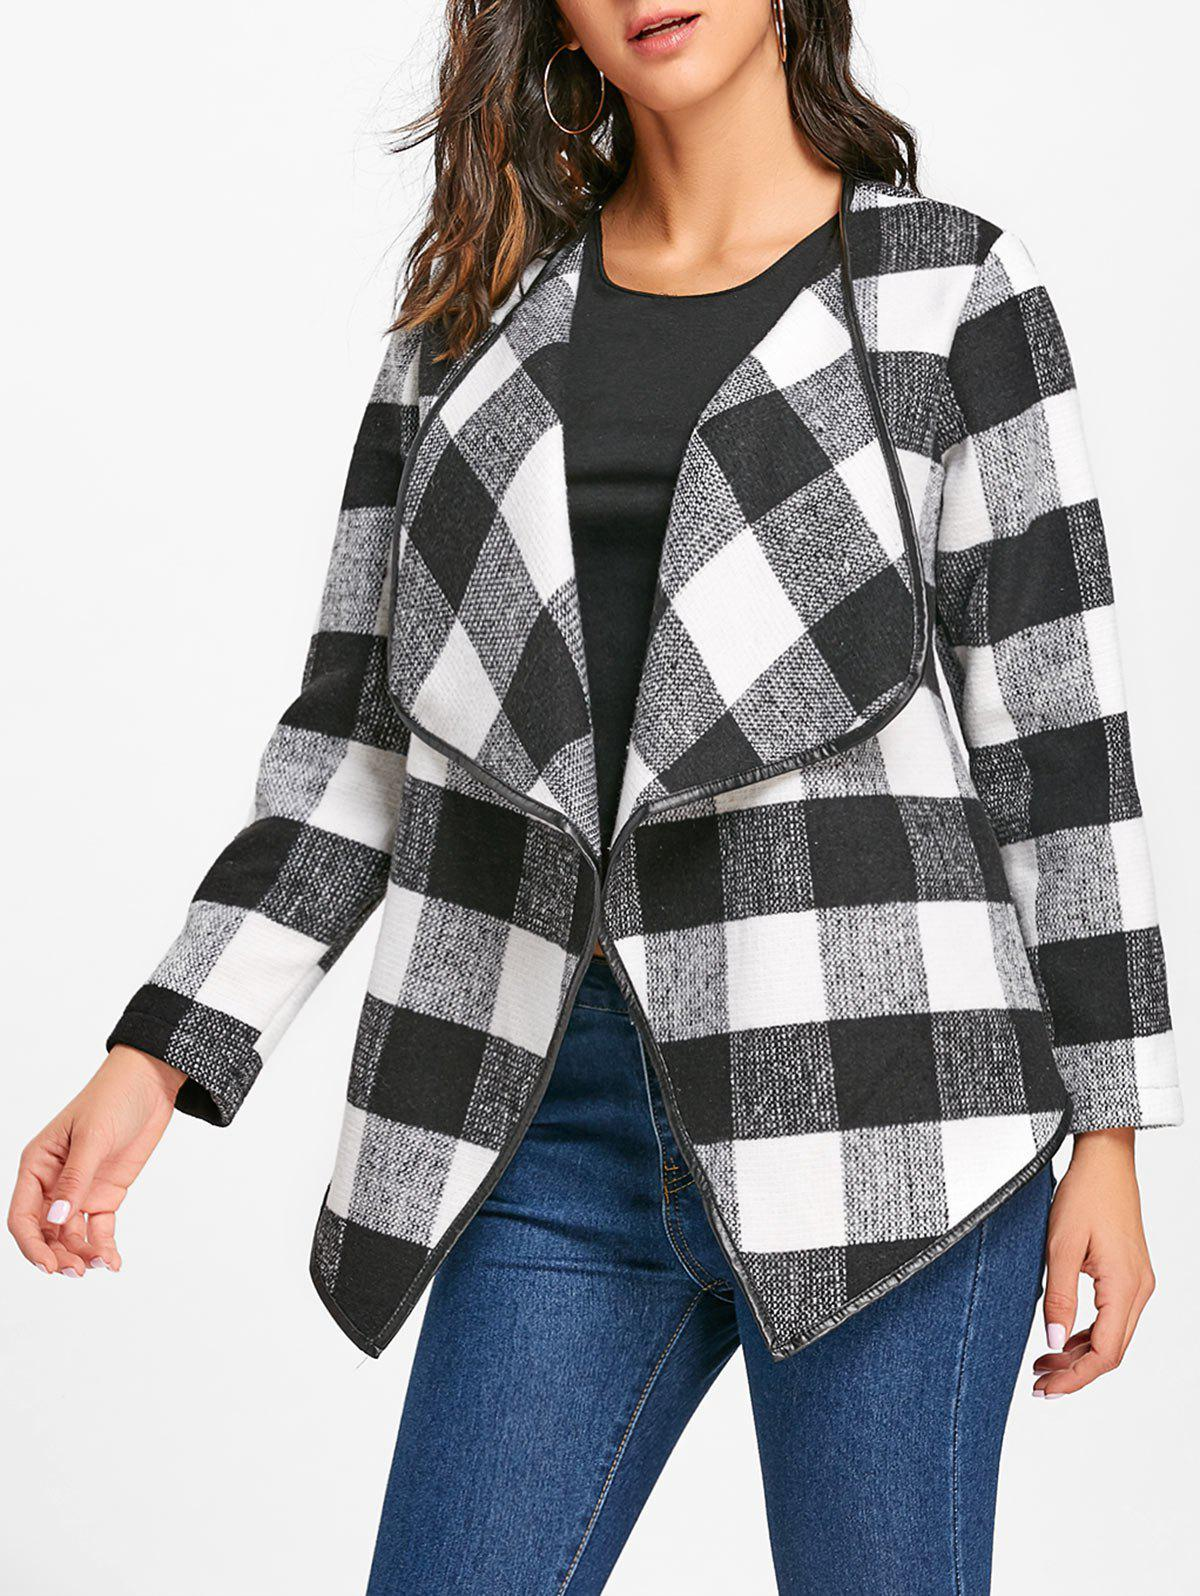 Plaid Turndown Collar Jacket - WHITE/BLACK S